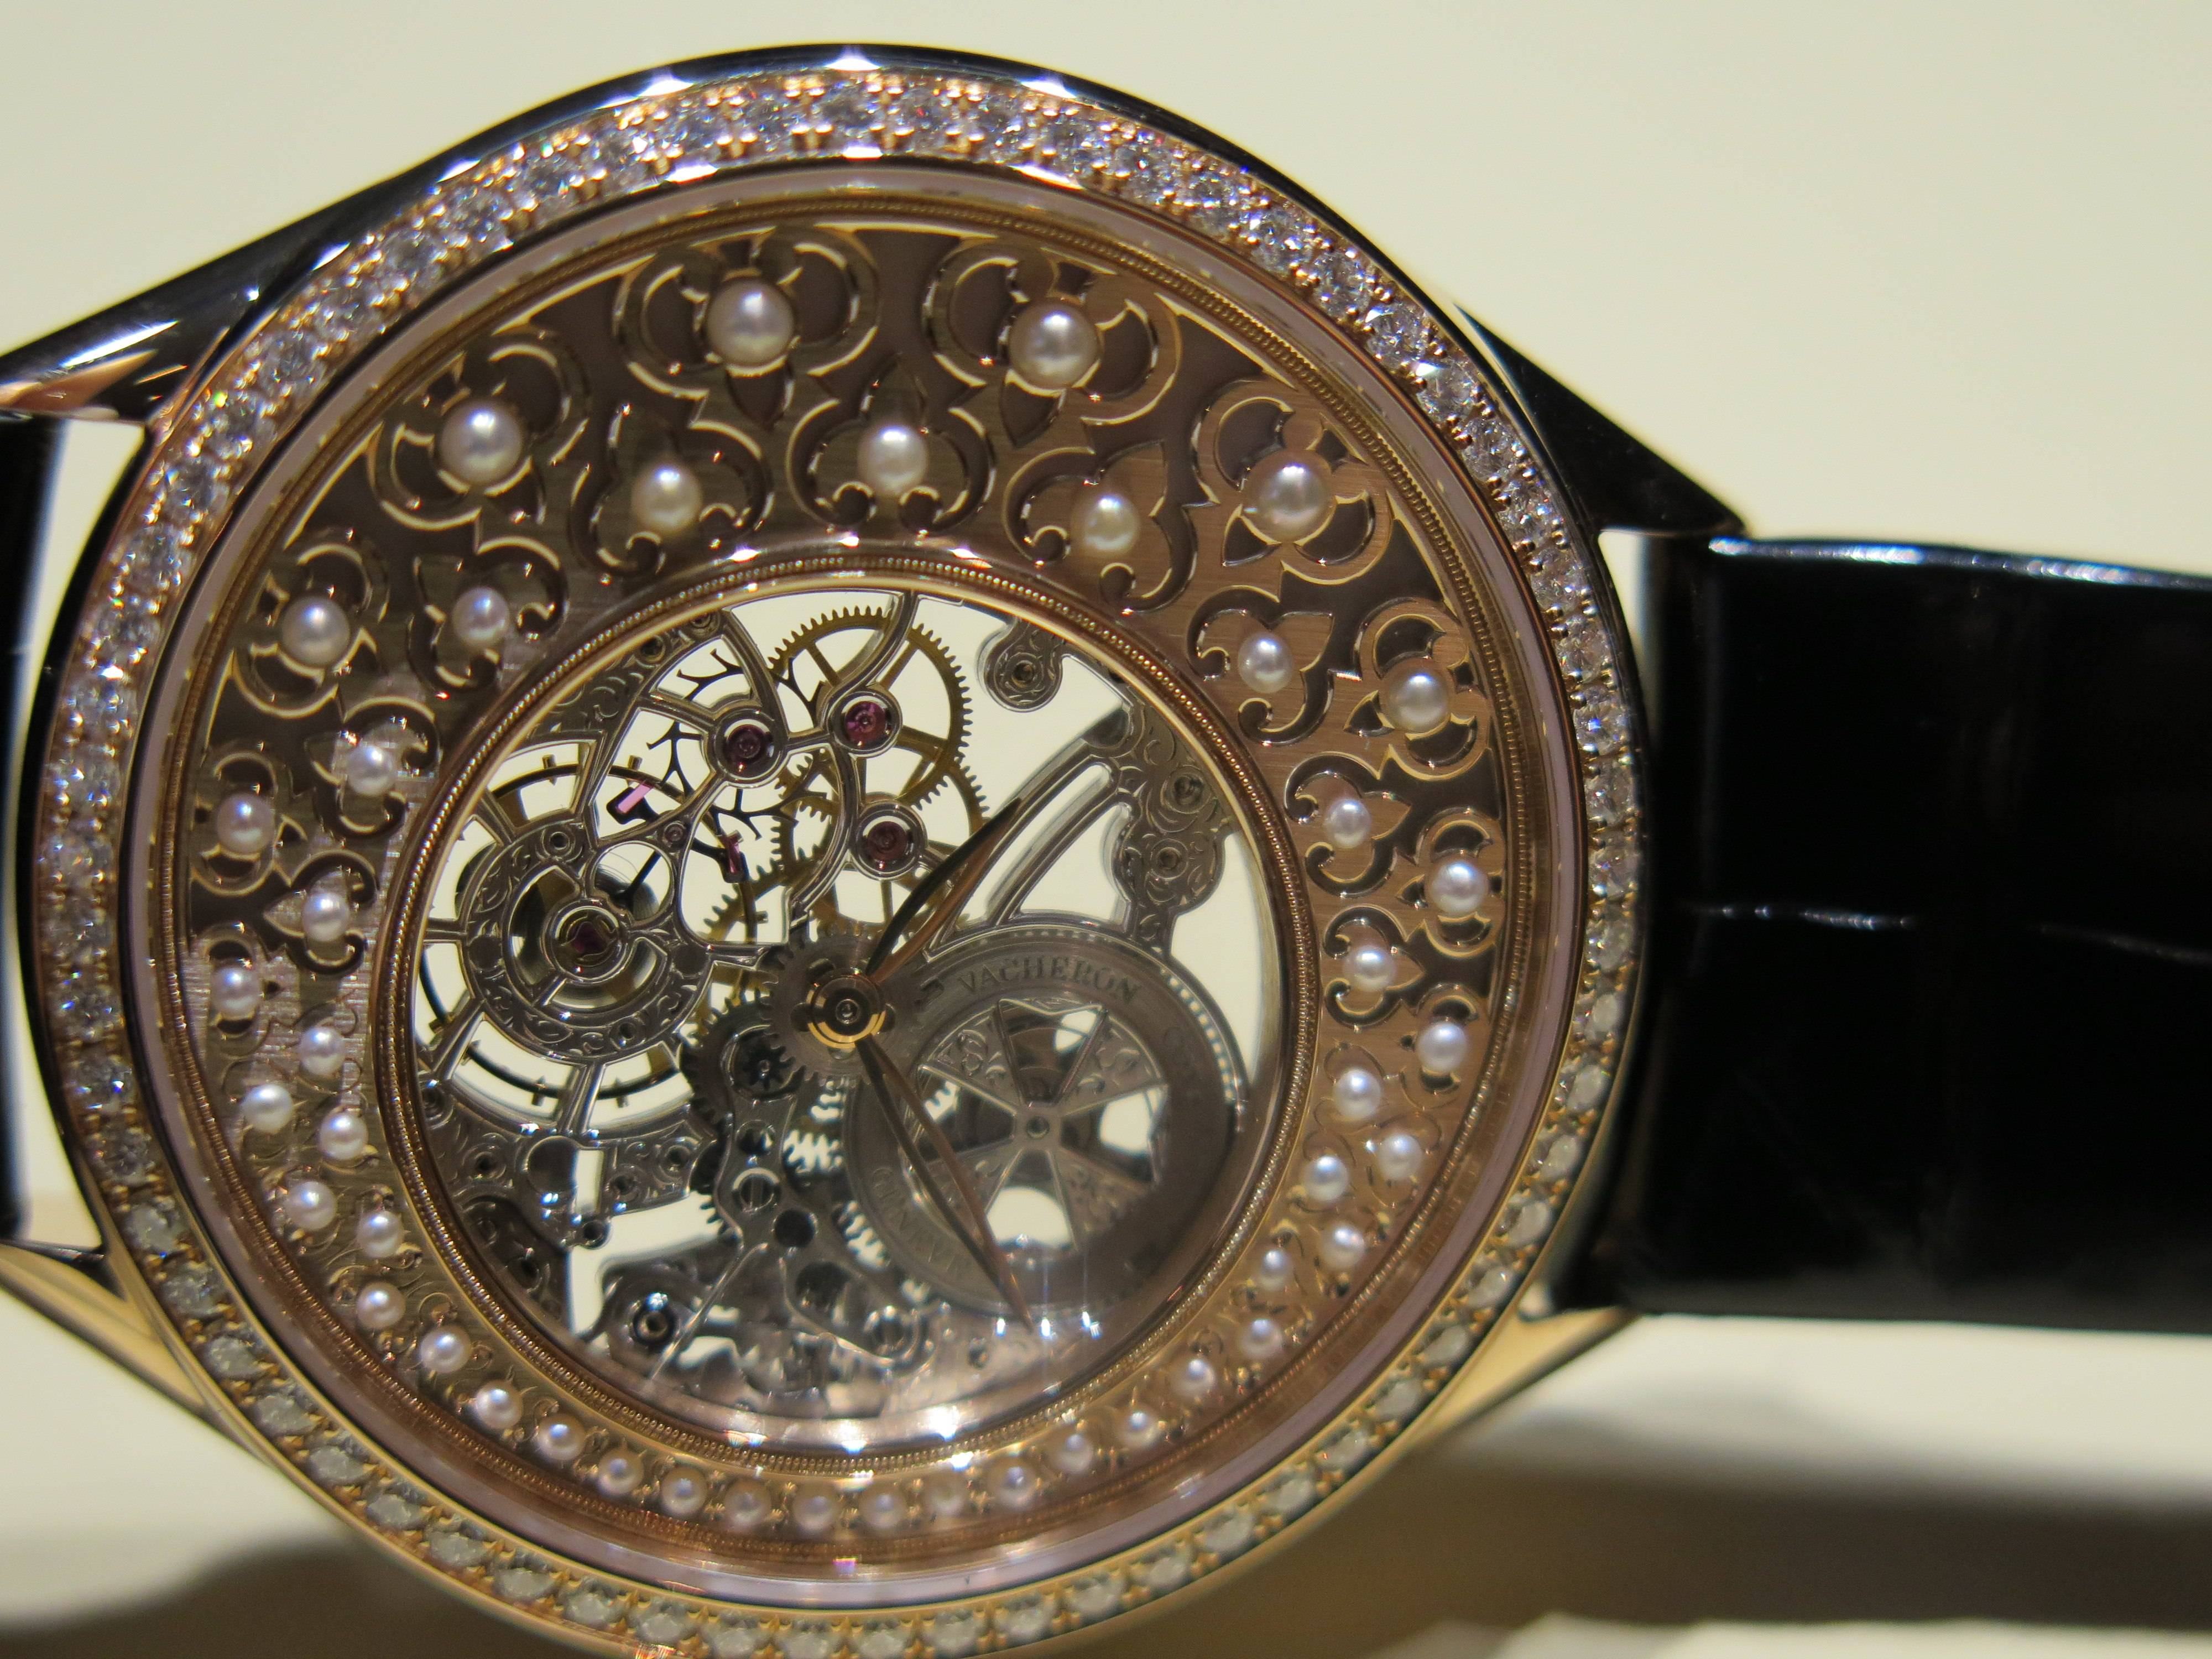 From the Vacheron Constantin Metiers d'Art Fabuleux Ornements Collection.